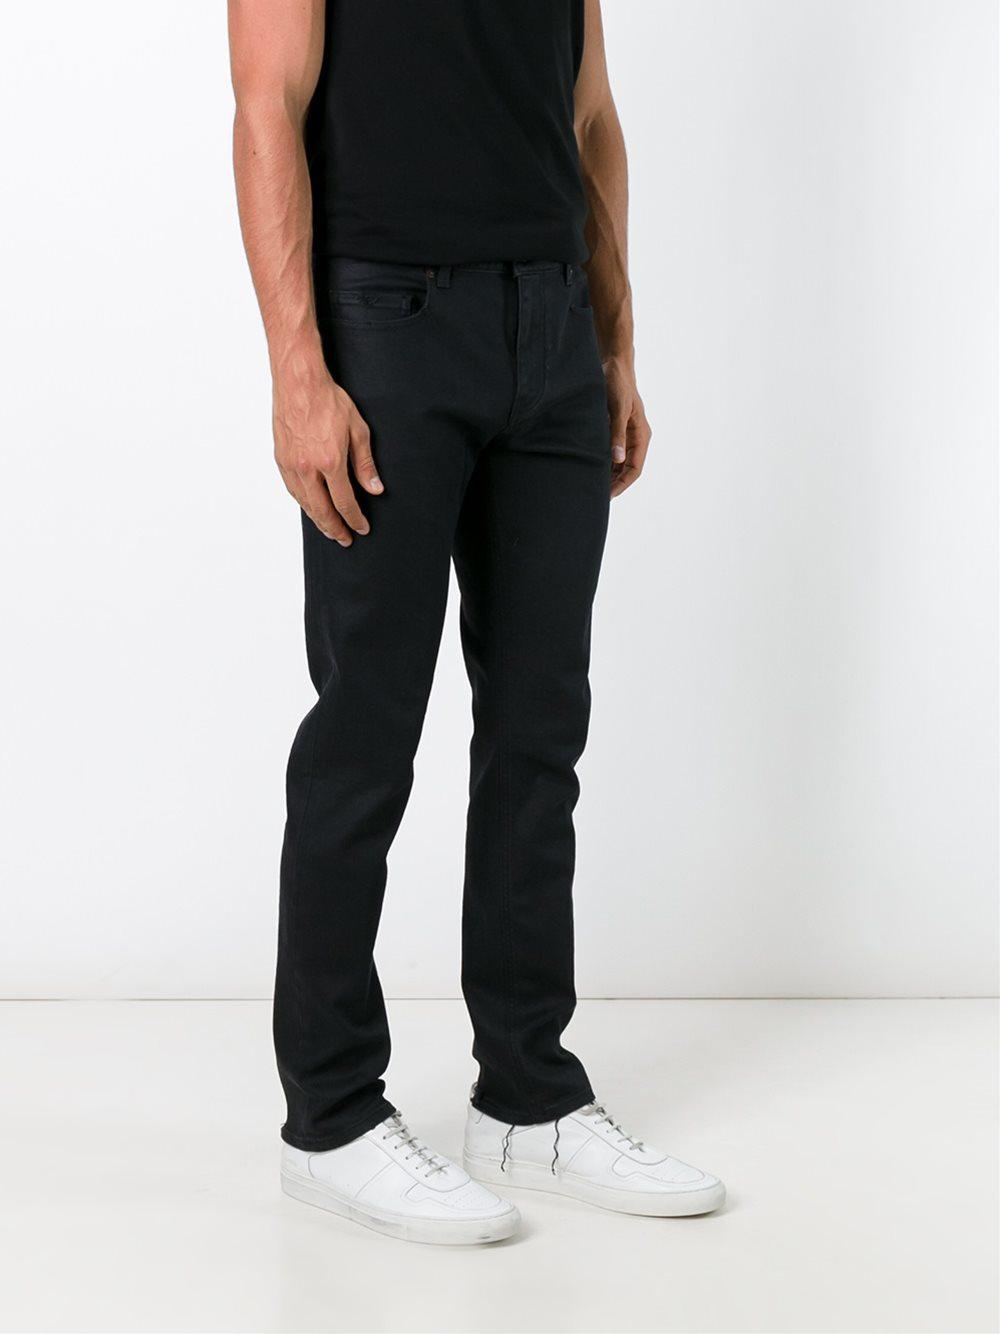 Style Diesel TAPERED Jeans for man as you wish! BUY BELTHER, BUSTER, AKEE, JIFER and LARKEE BEEX to slim your figure and be modern and versatile! You can be brave even wearing them. Not believing us? Come and shop on exploreblogirvd.gq Once you try them, you won't ever wear anything else.